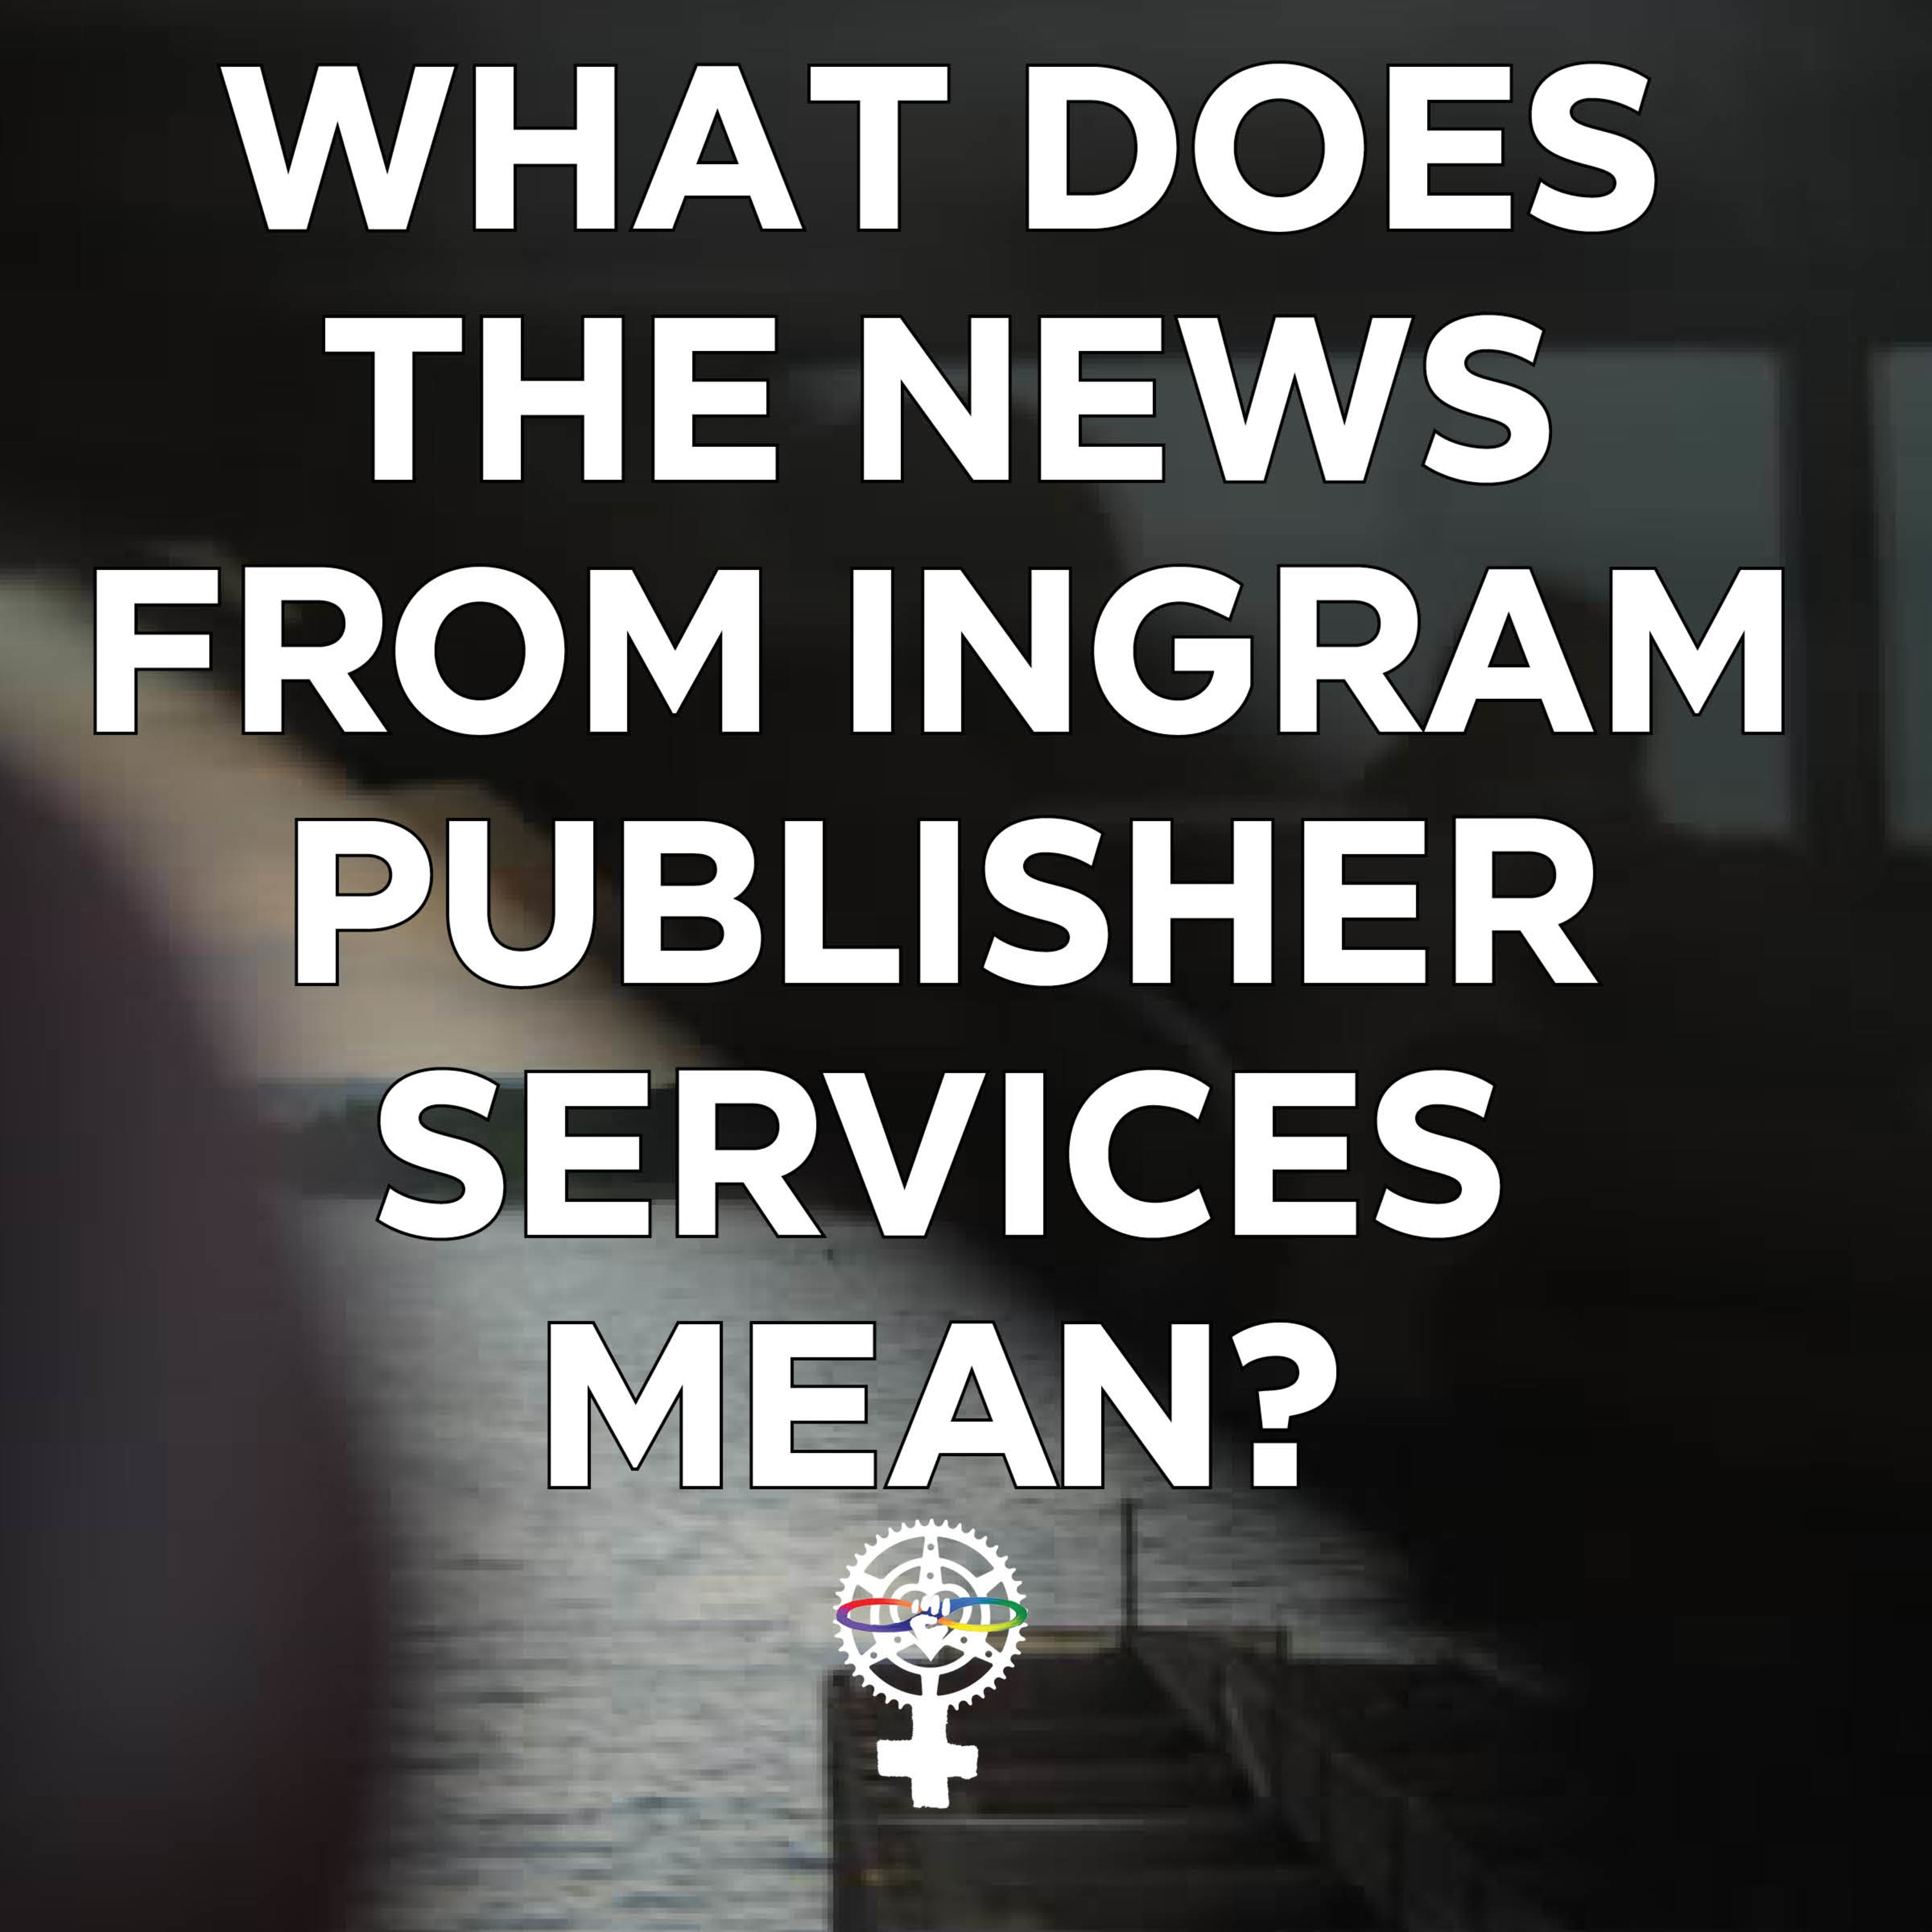 What does the news from Ingram Publisher Services Mean?